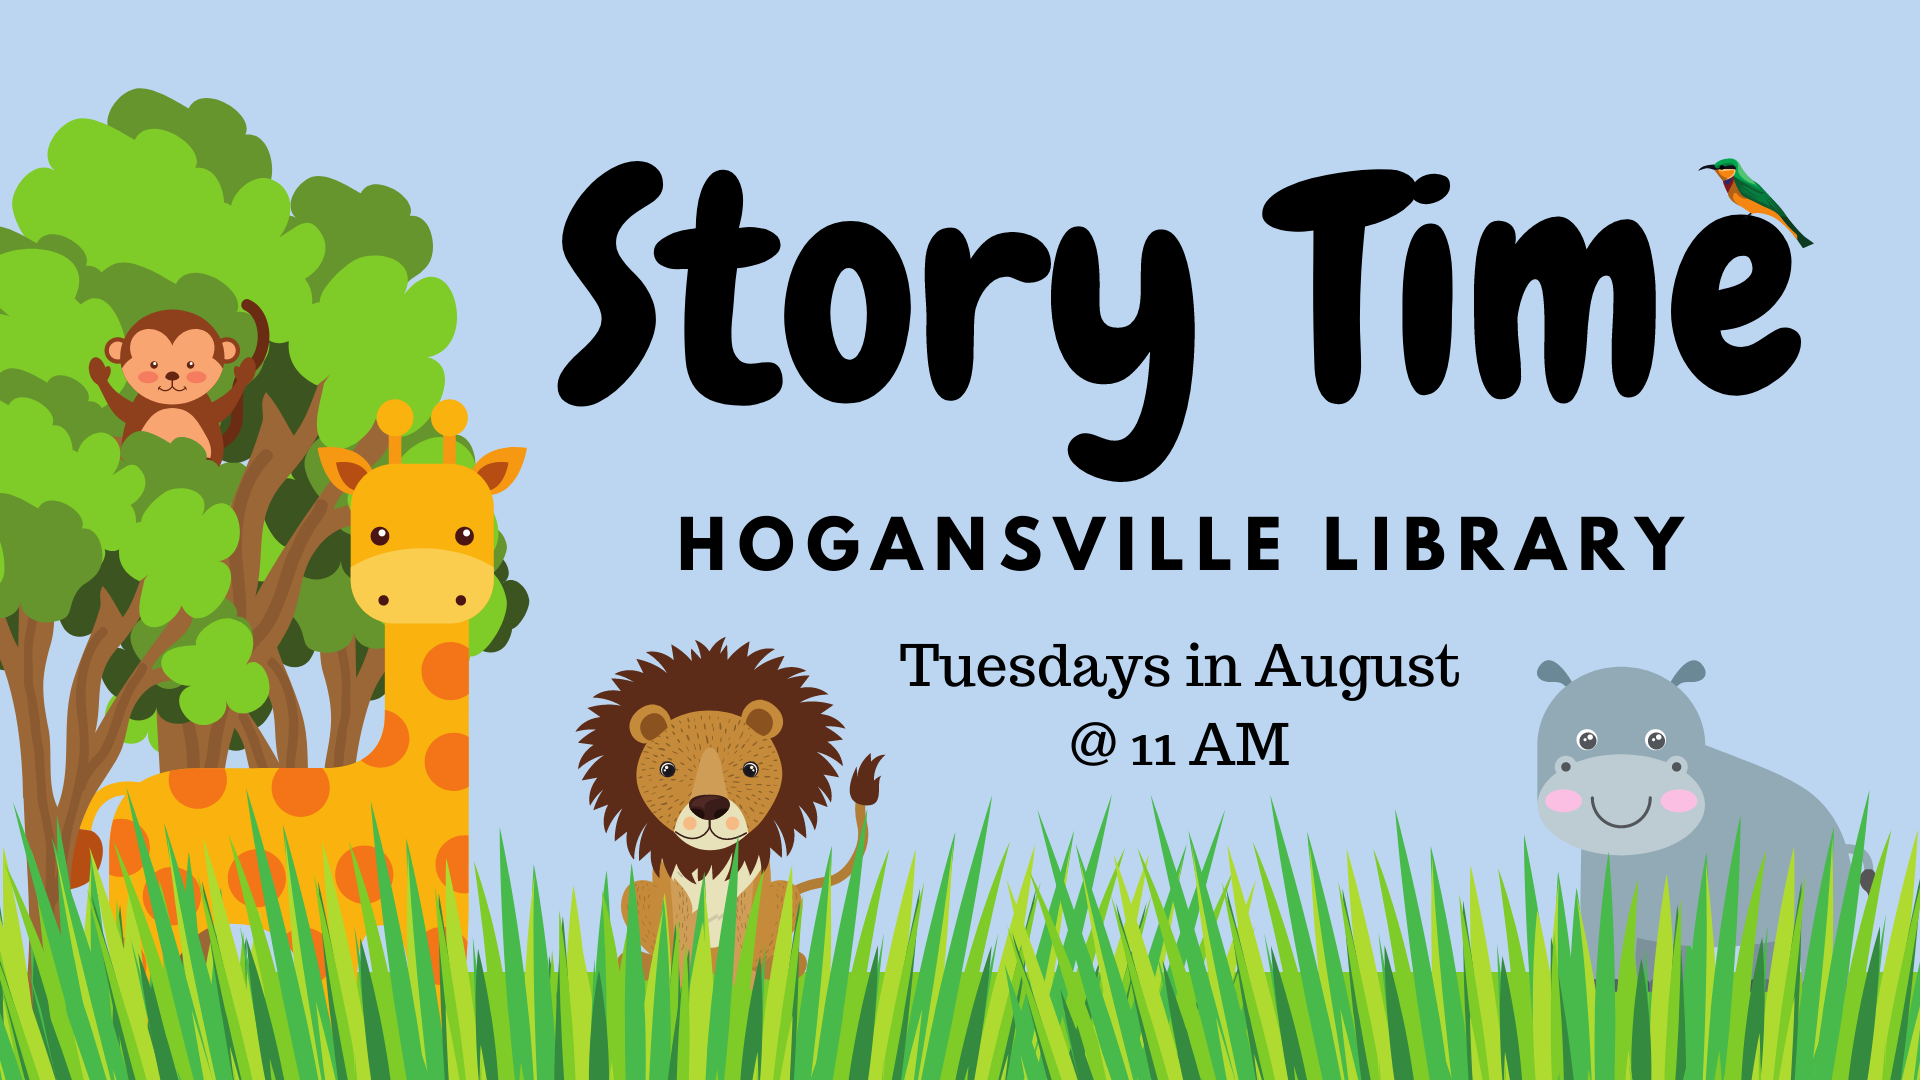 Storytime every Tuesday at 11 am at the Hogansville Public Library